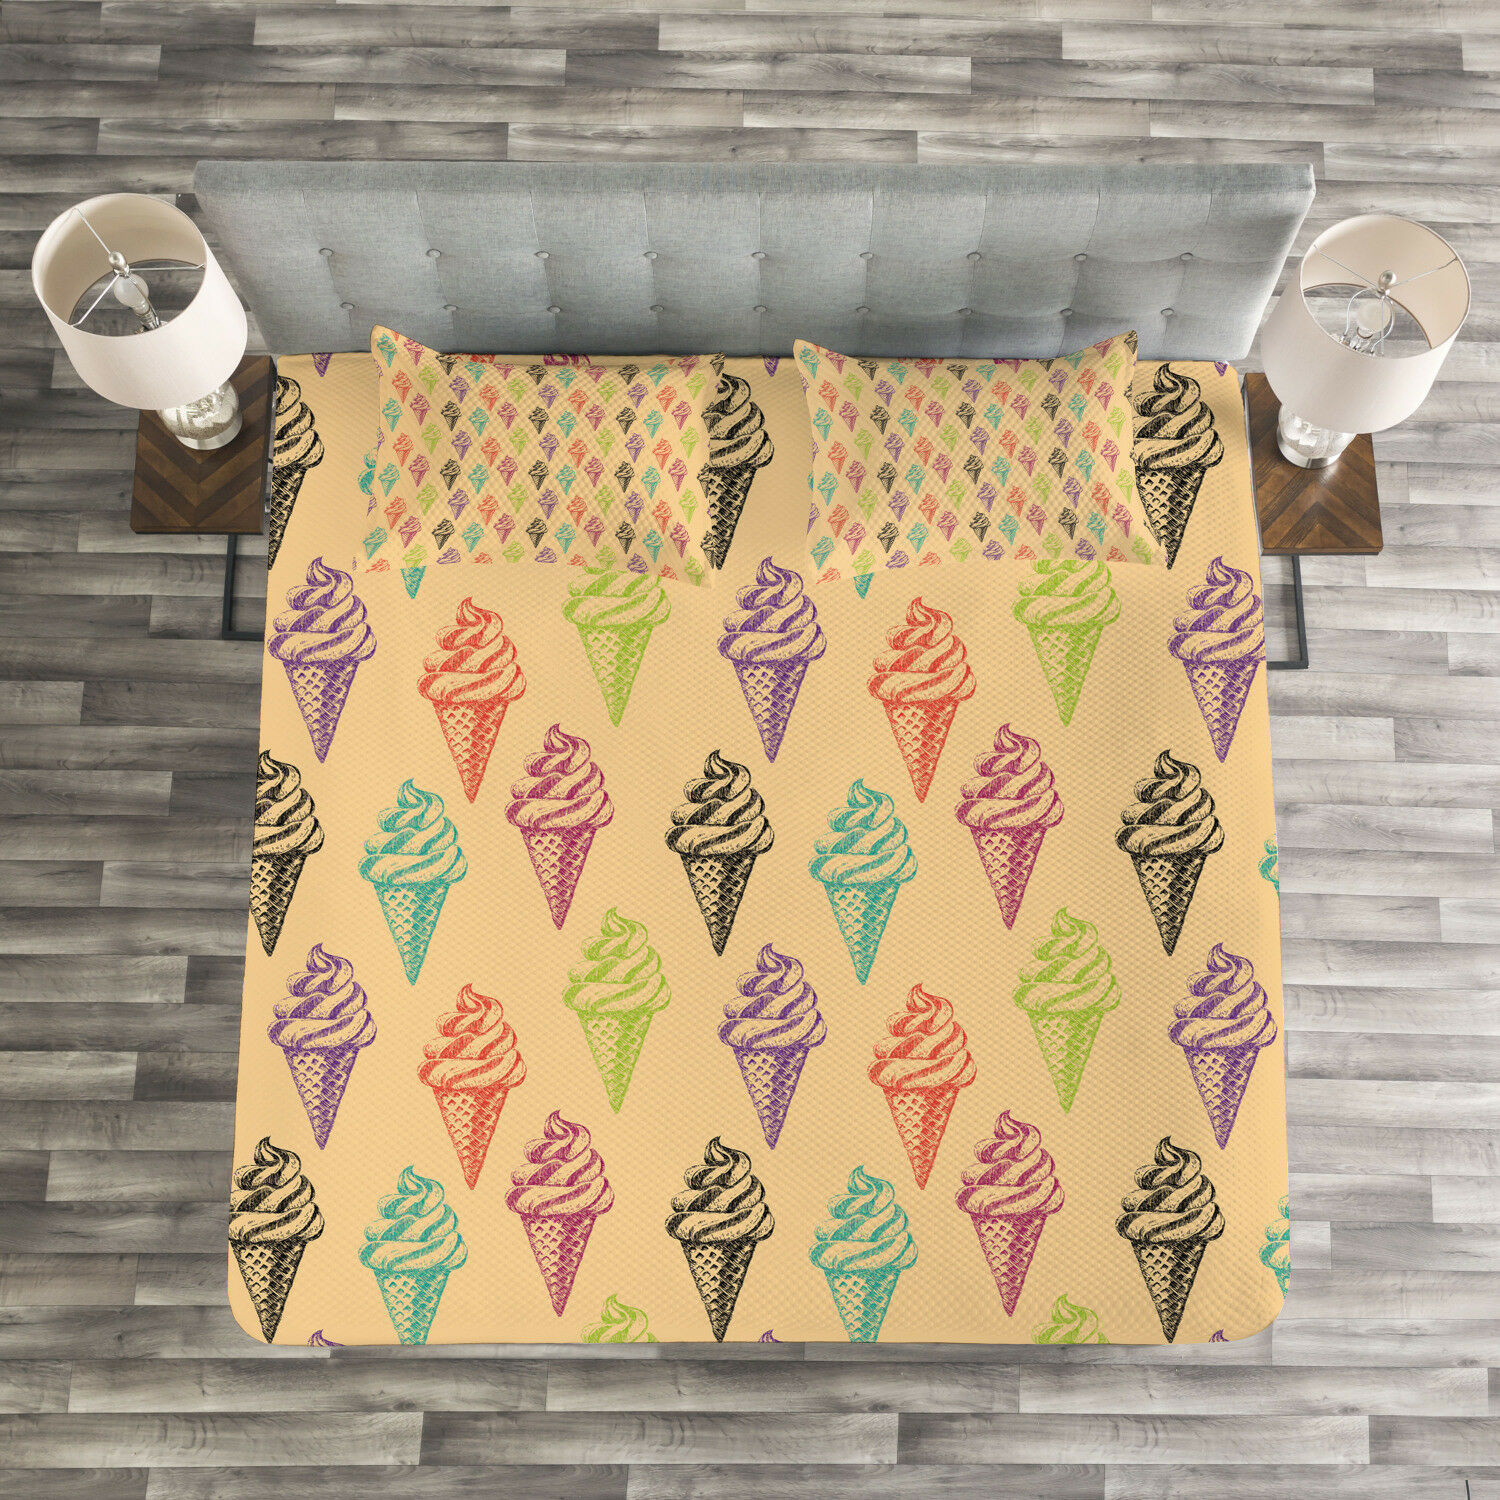 Ice Cream Quilted Bedspread & Pillow Shams Set, Grunge Icons Print